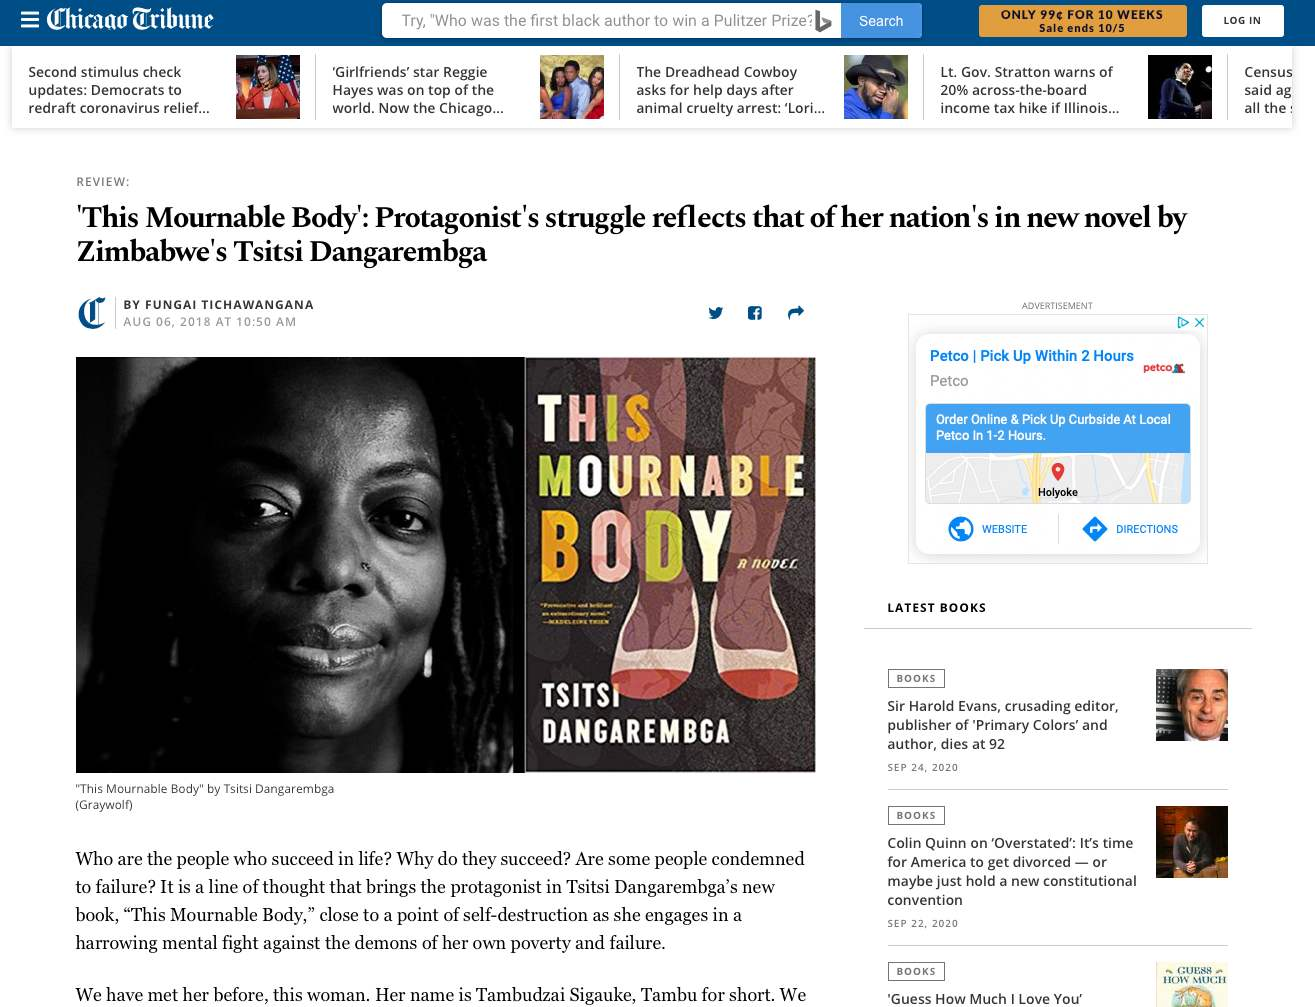 Book review of This Mournable Body on The Chicago Tribune website